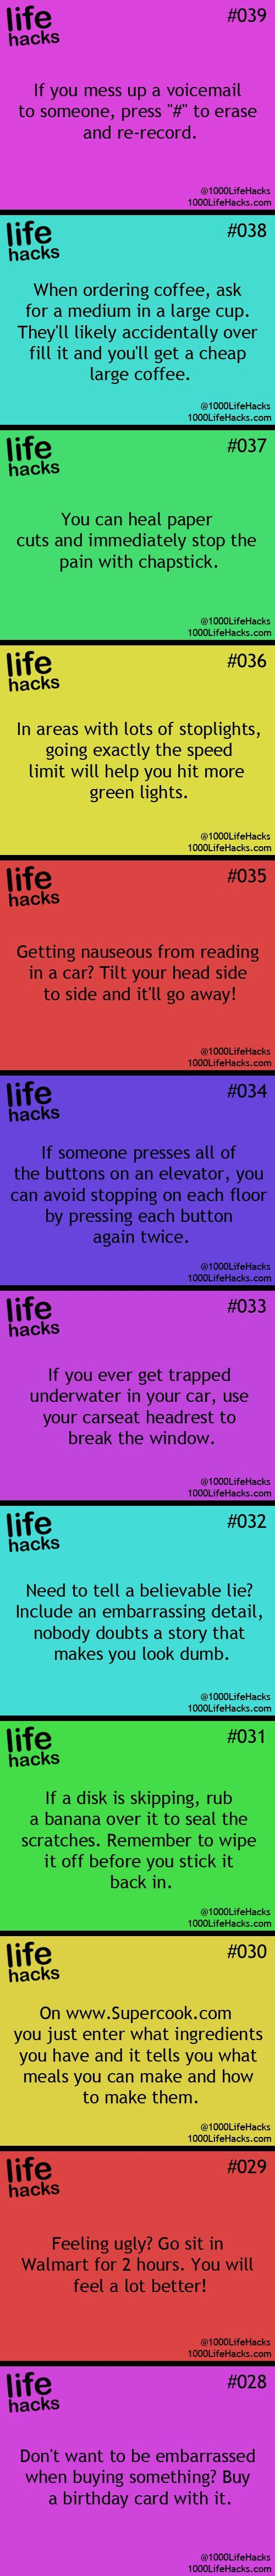 25 Useful Life Hacks, mostly just for first world problems:)